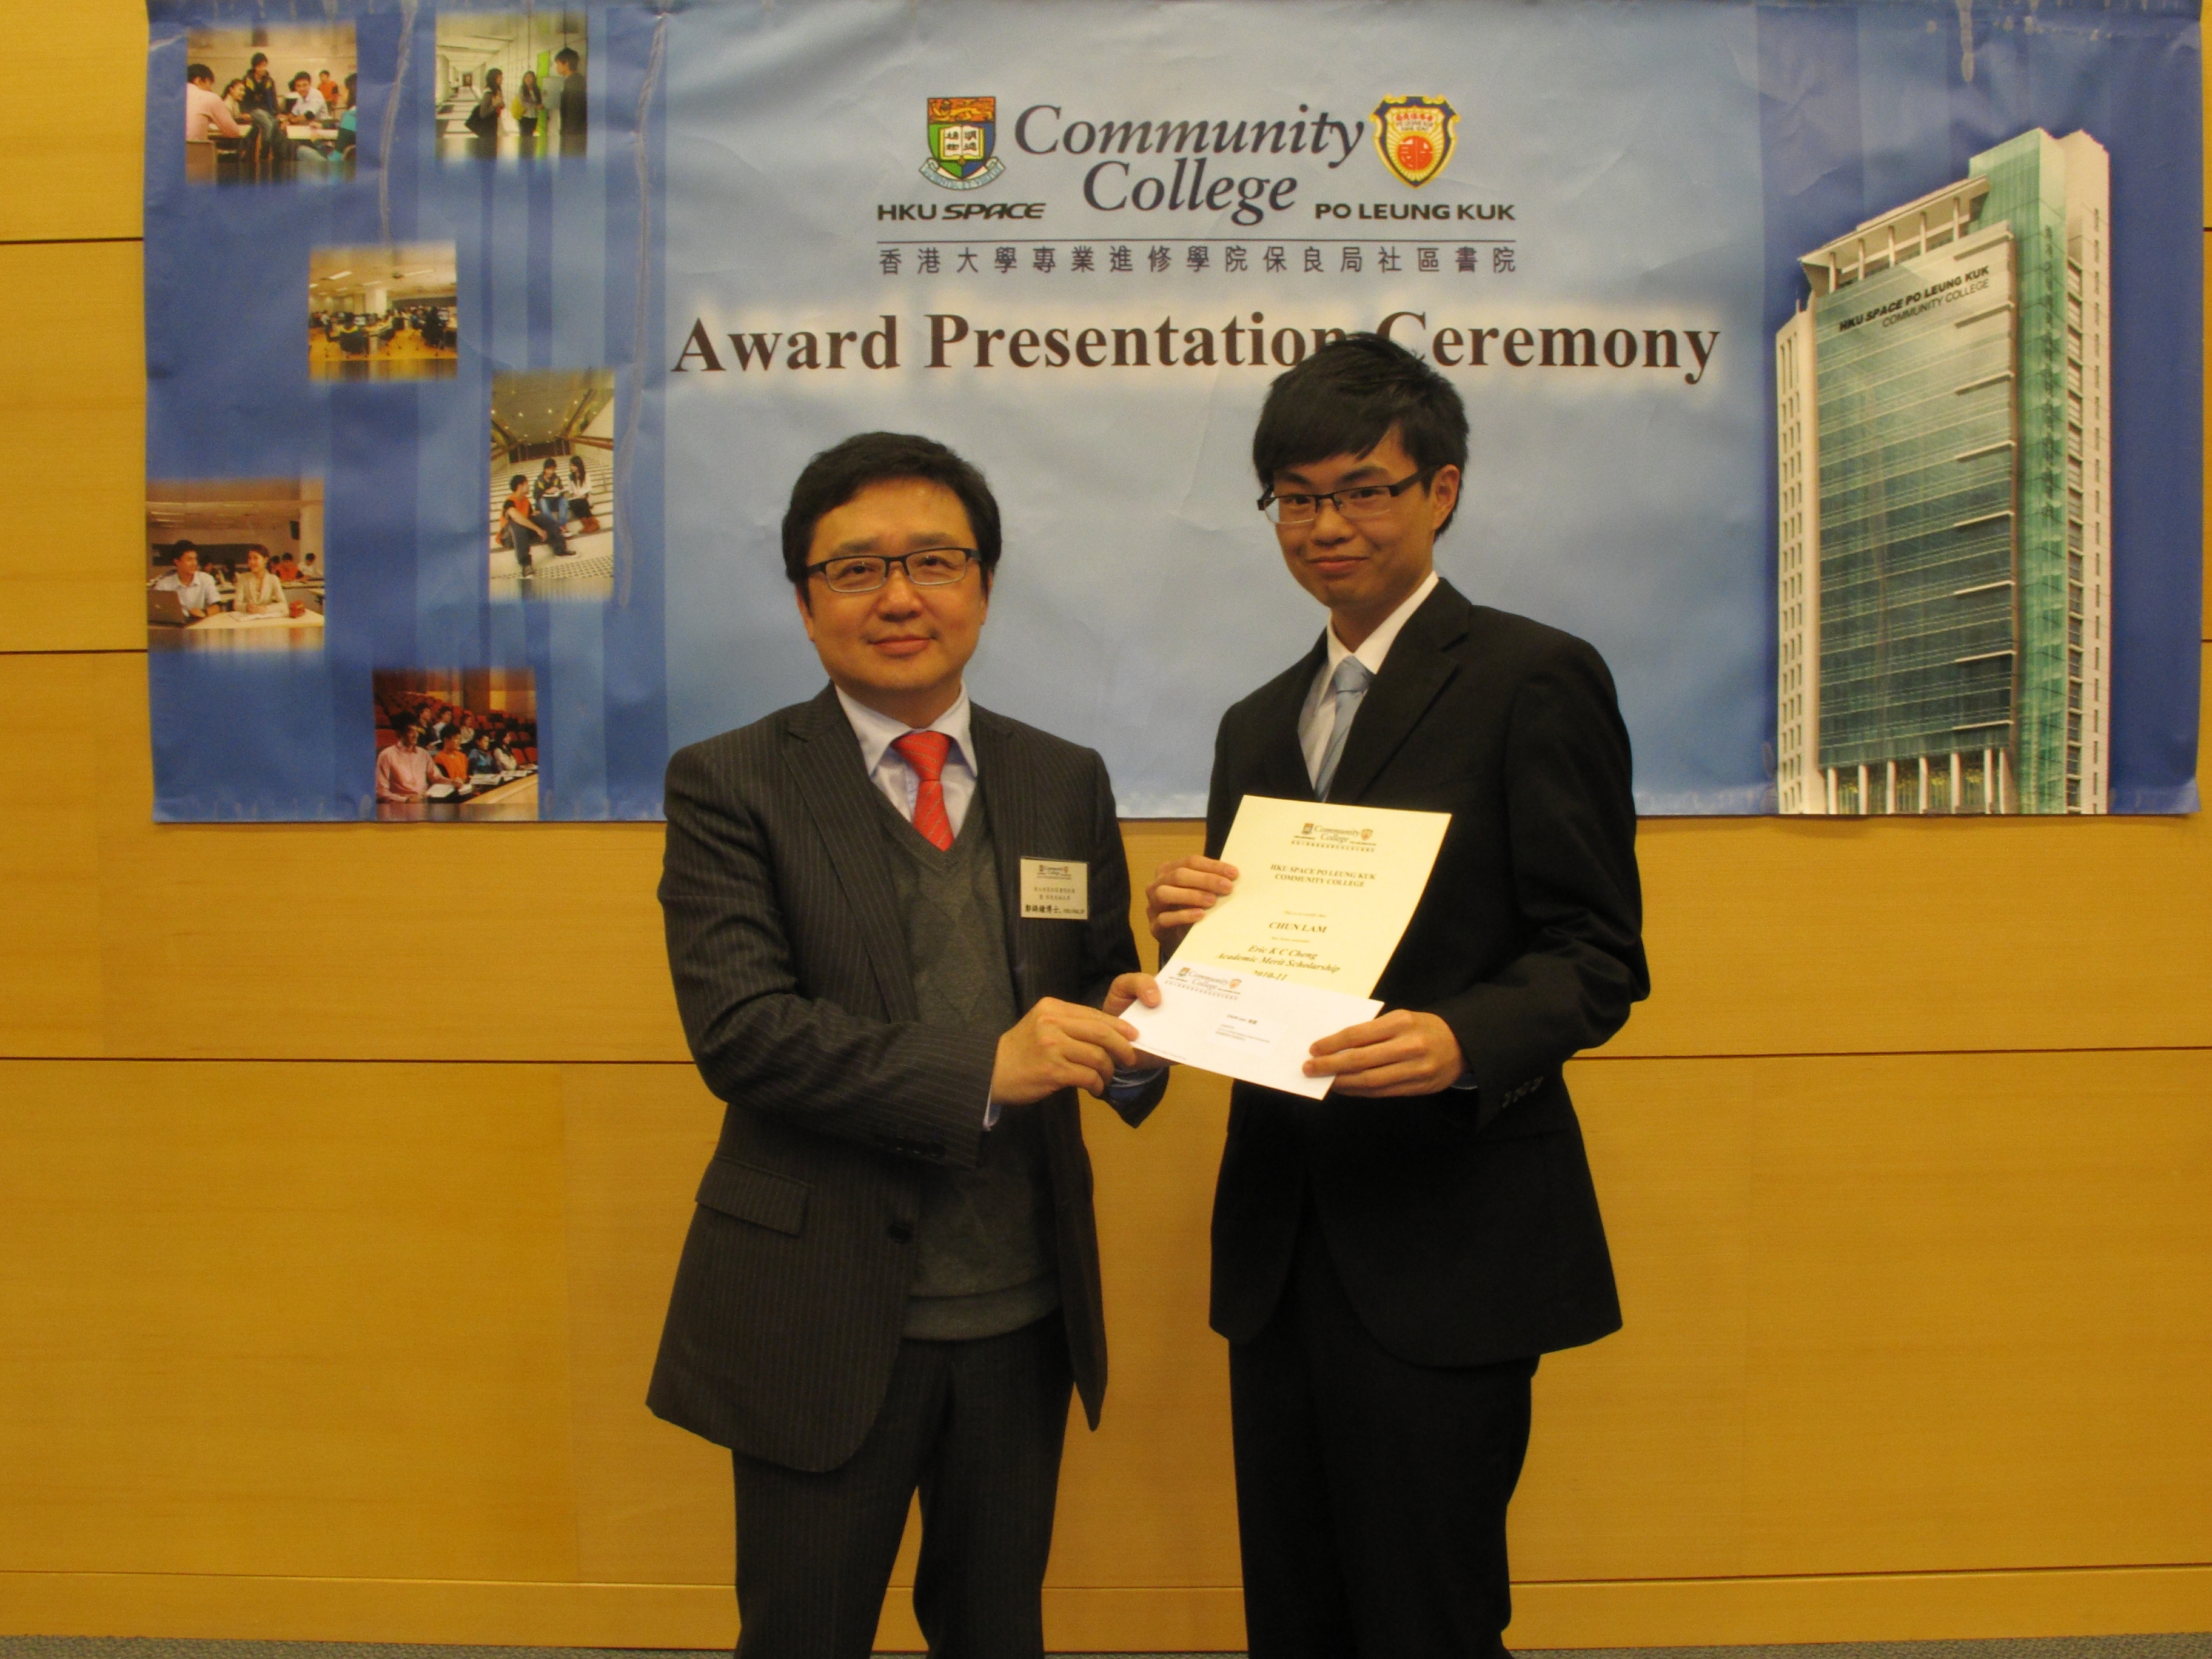 Award Presentation Ceremony 2011 - Photo - 11